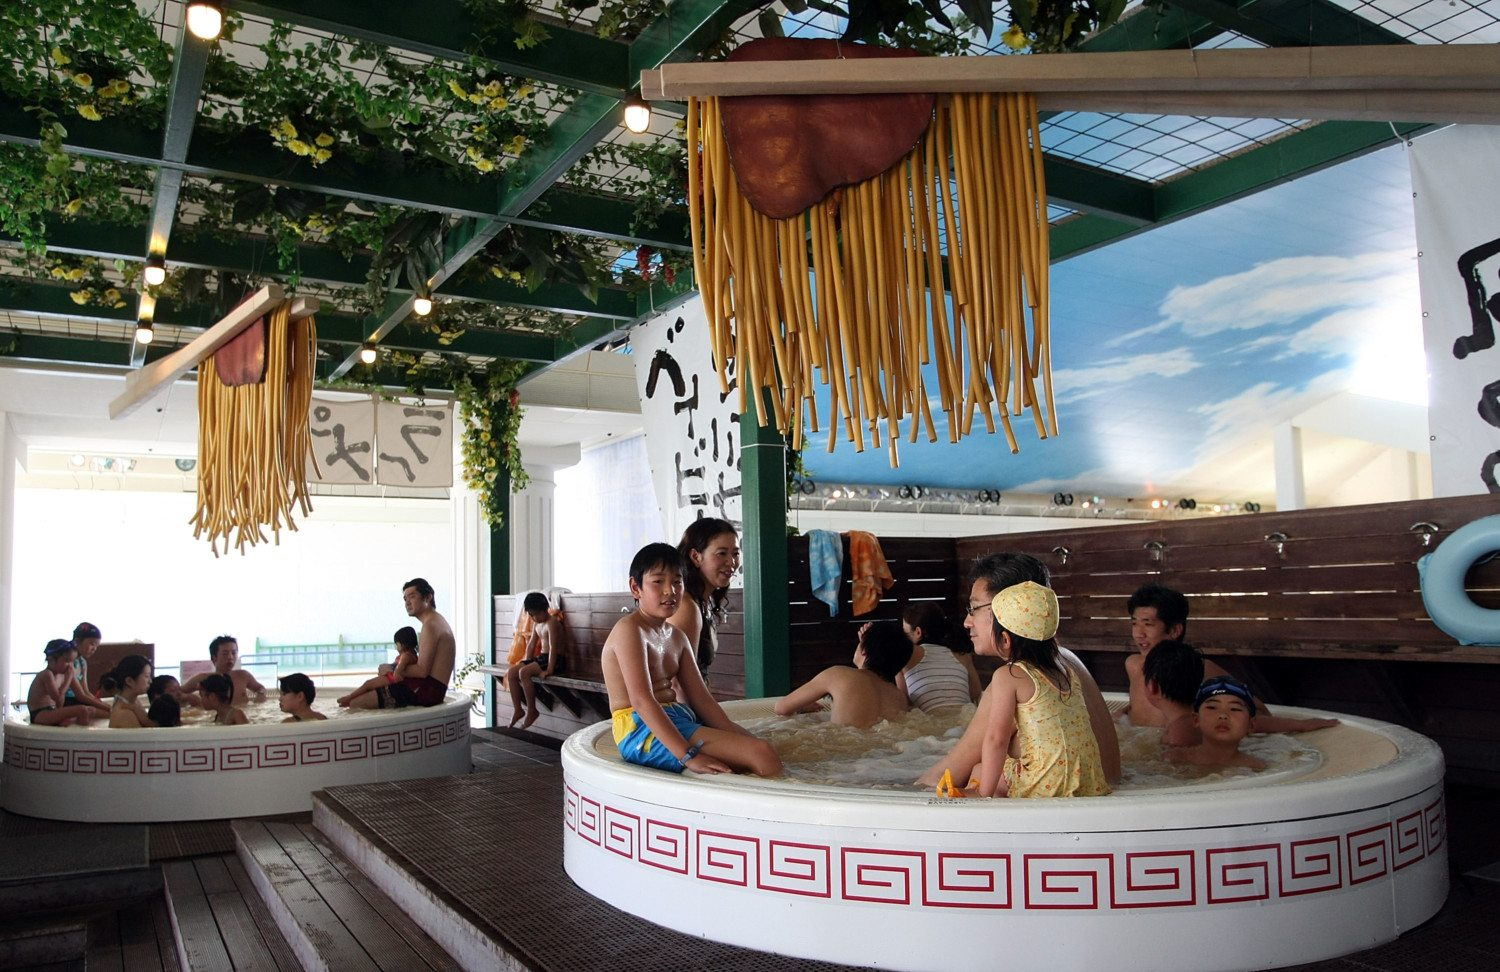 Soak In A Ramen Bath At Yunessan Spa House In Japan - Simplemost